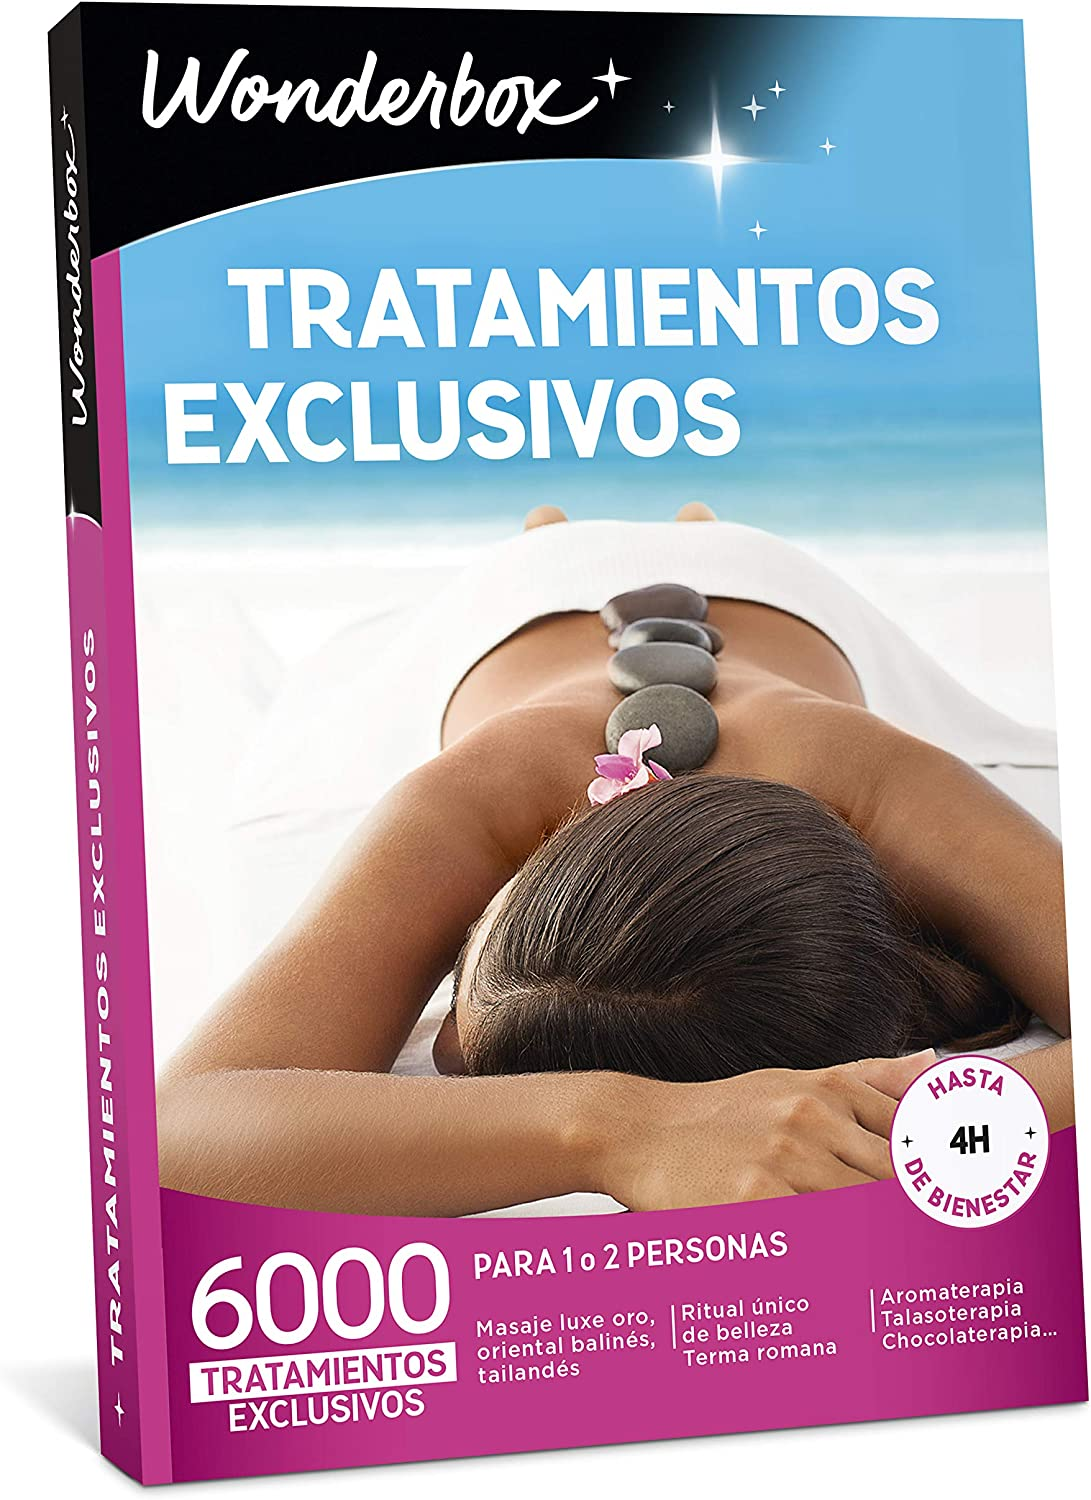 wonderbox tratamientos exclusivos